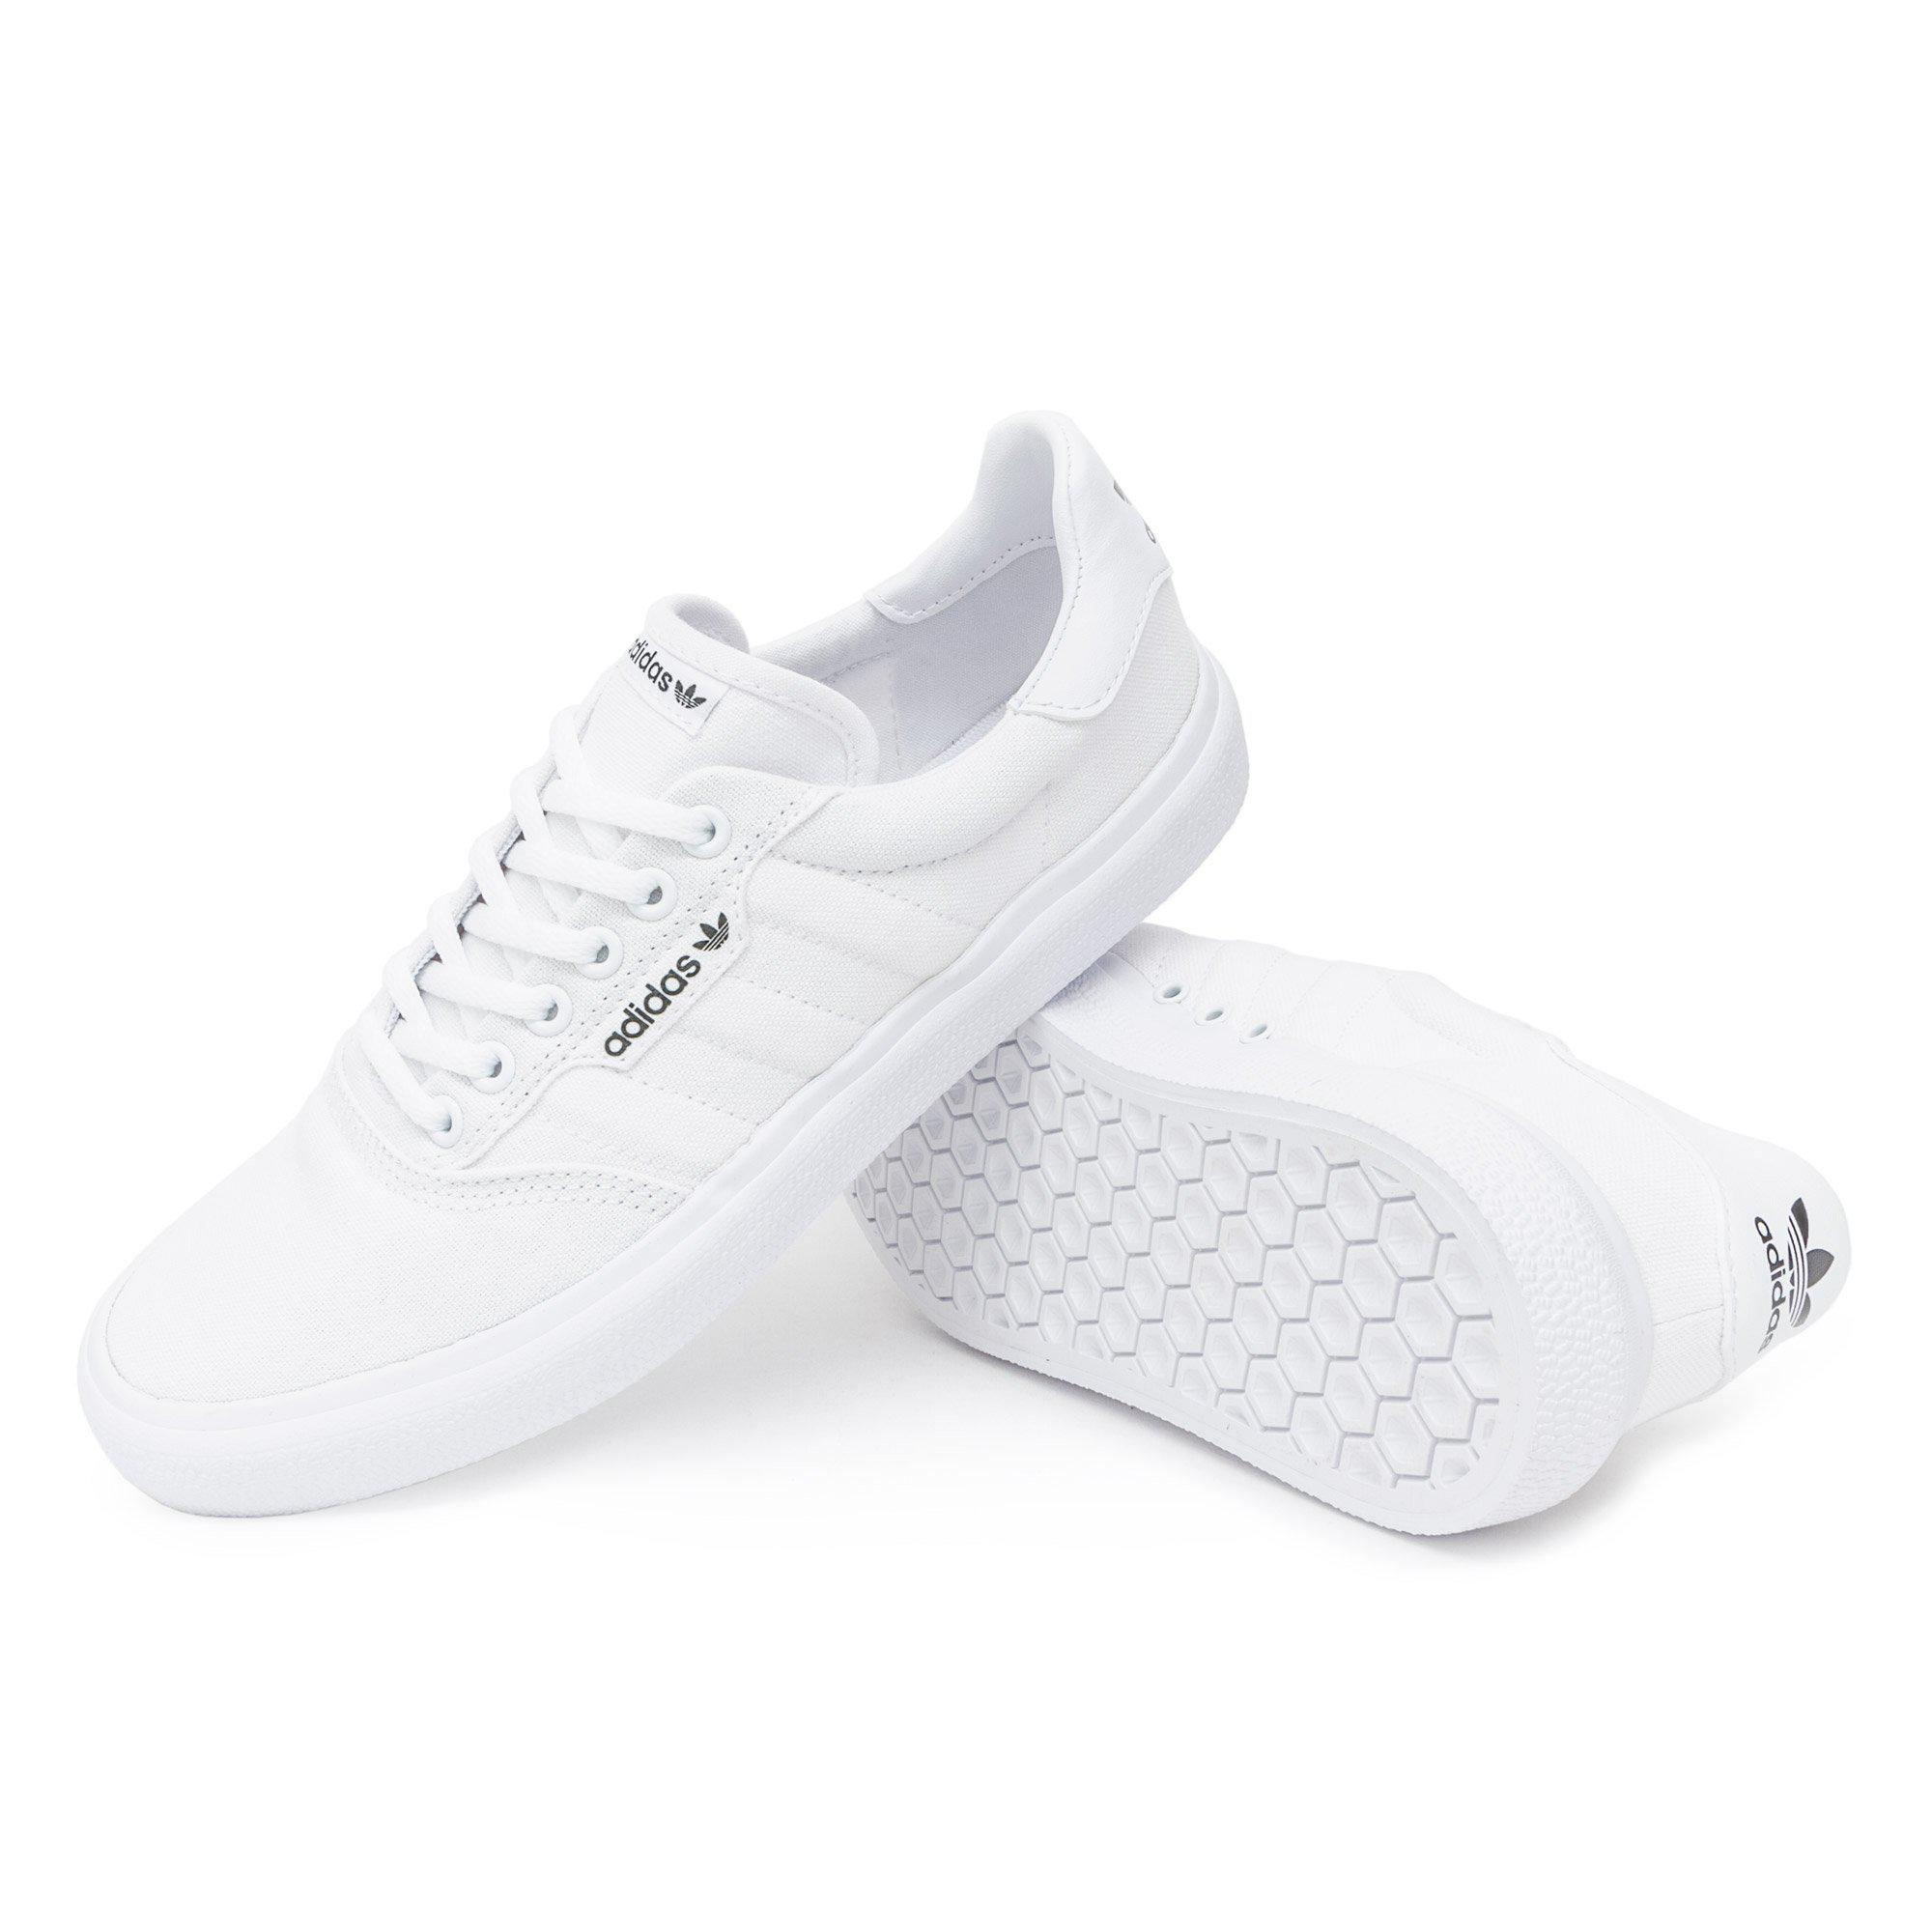 Adidas - White 3mc Vulc Shoes for Men - Lyst. View fullscreen fc6859ba2